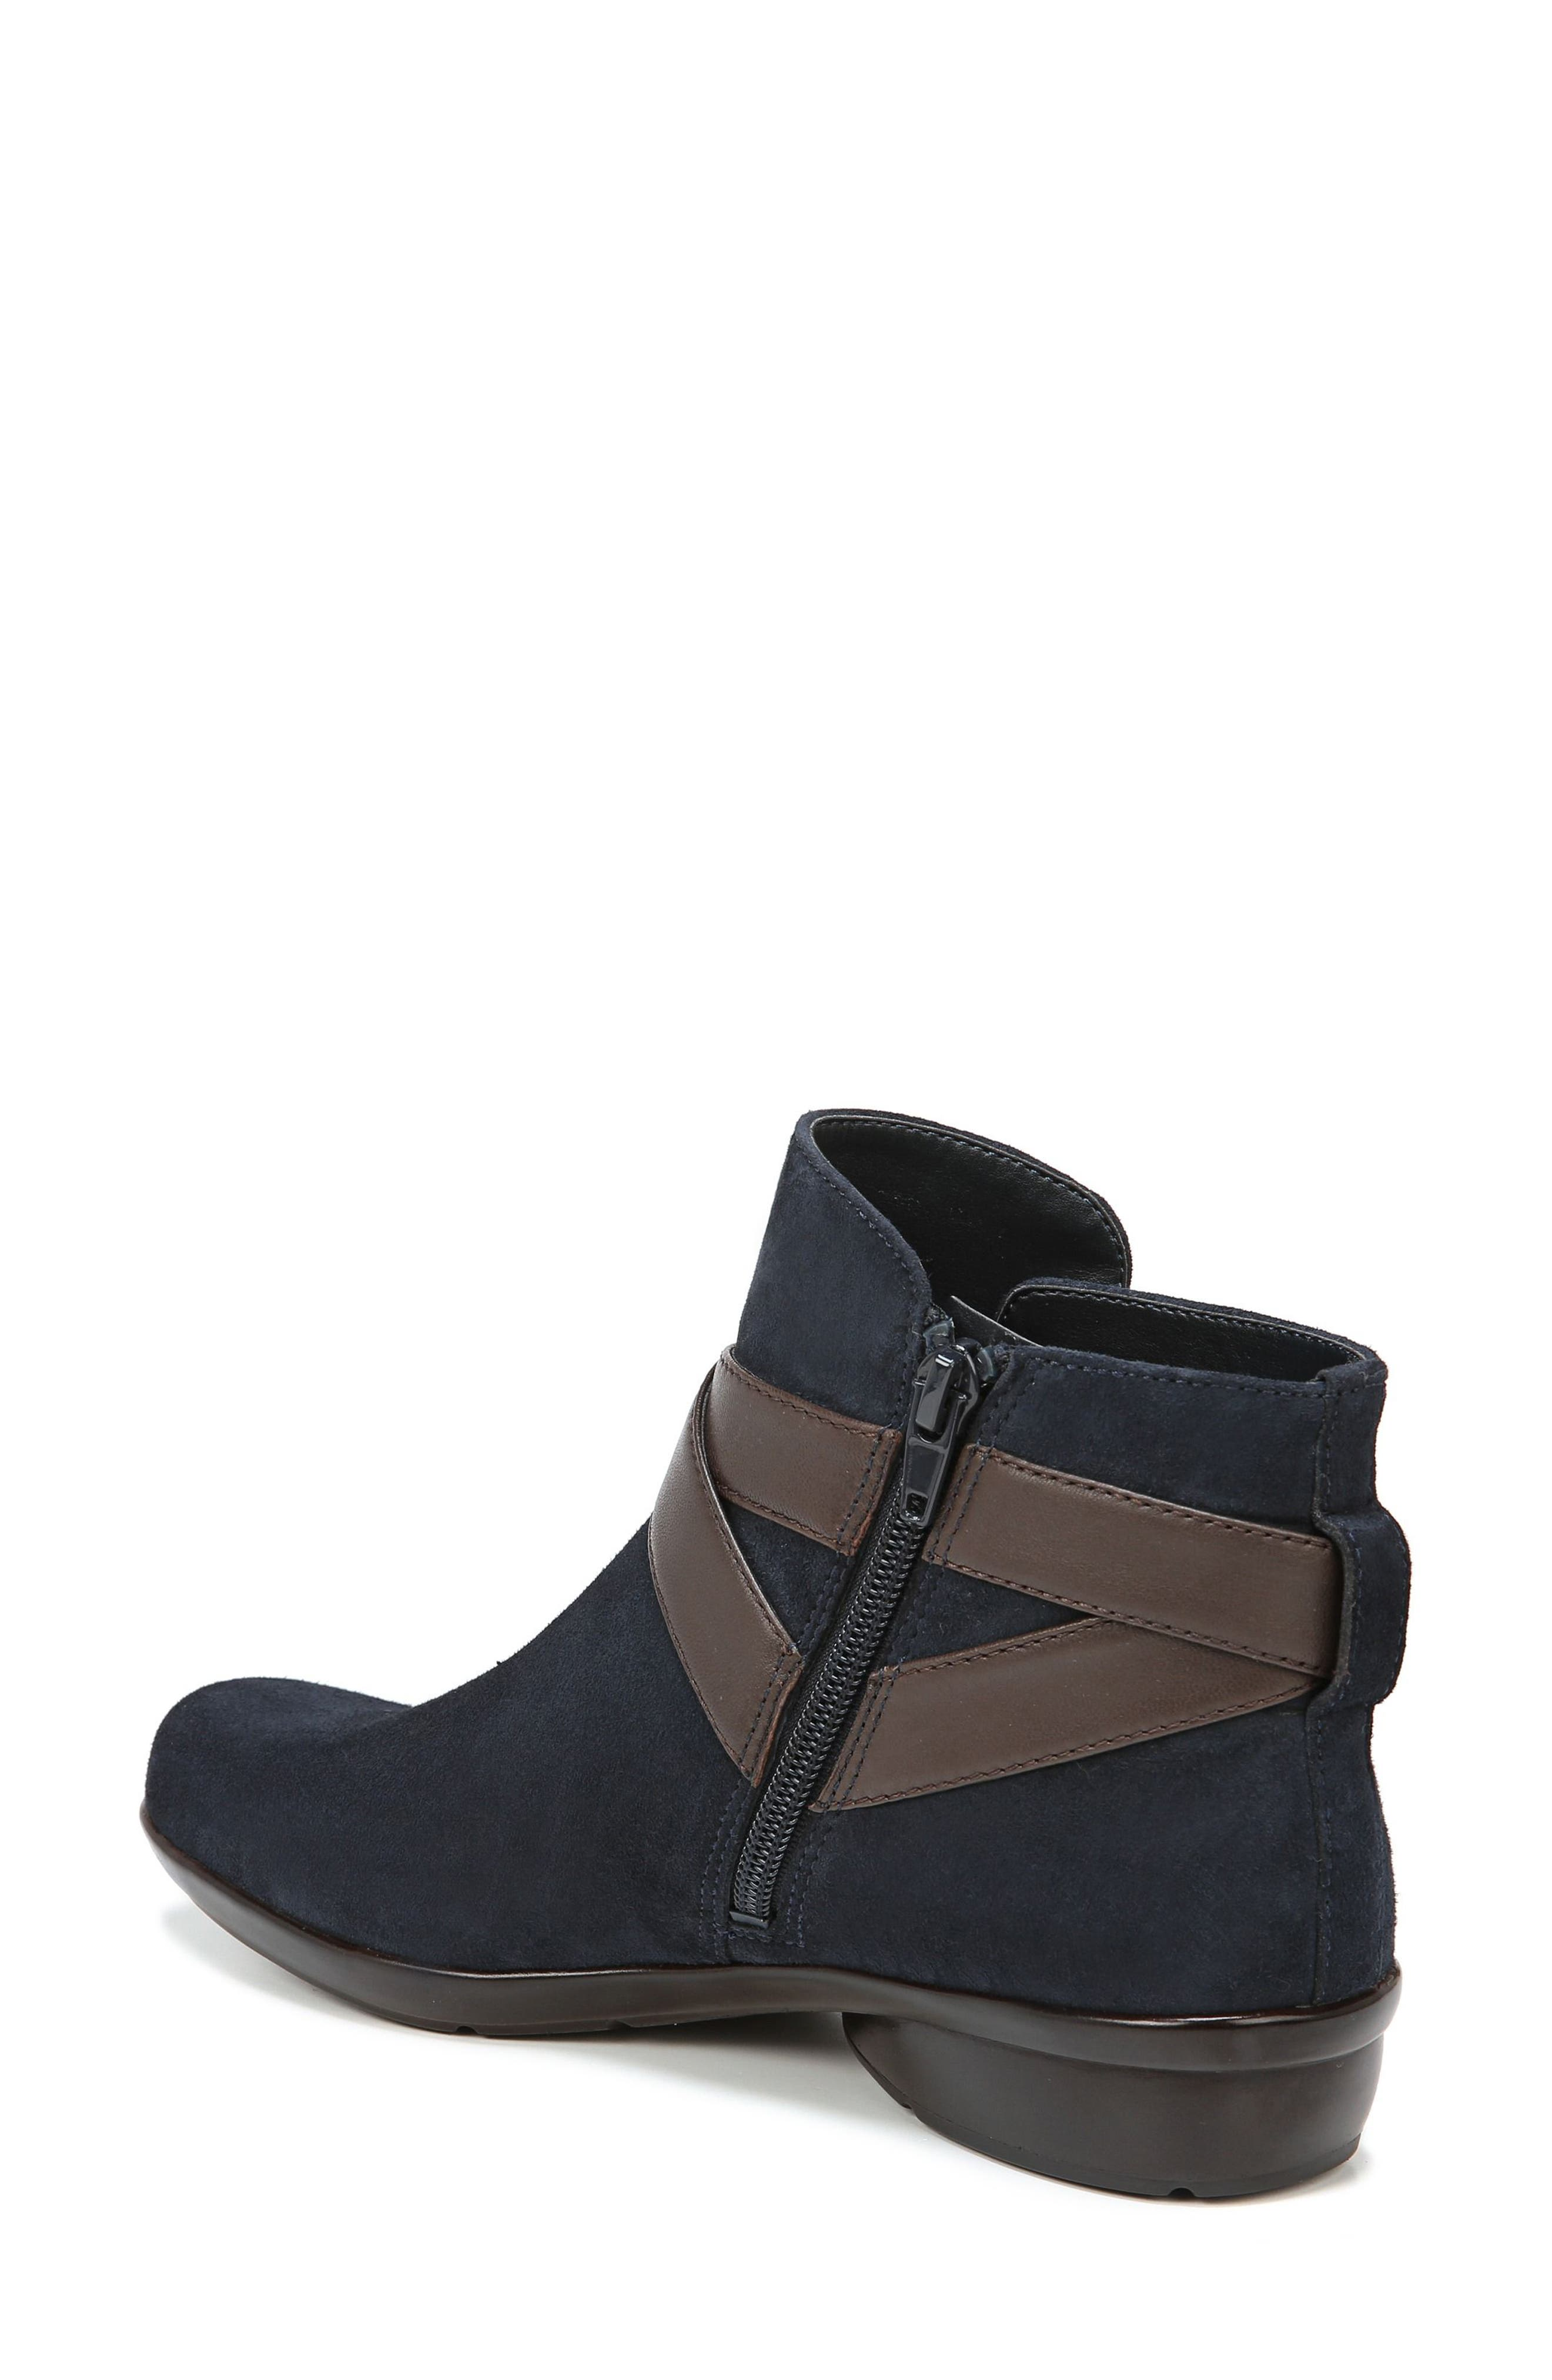 Cassandra Buckle Strap Bootie,                             Alternate thumbnail 2, color,                             NAVY/ BROWN SUEDE